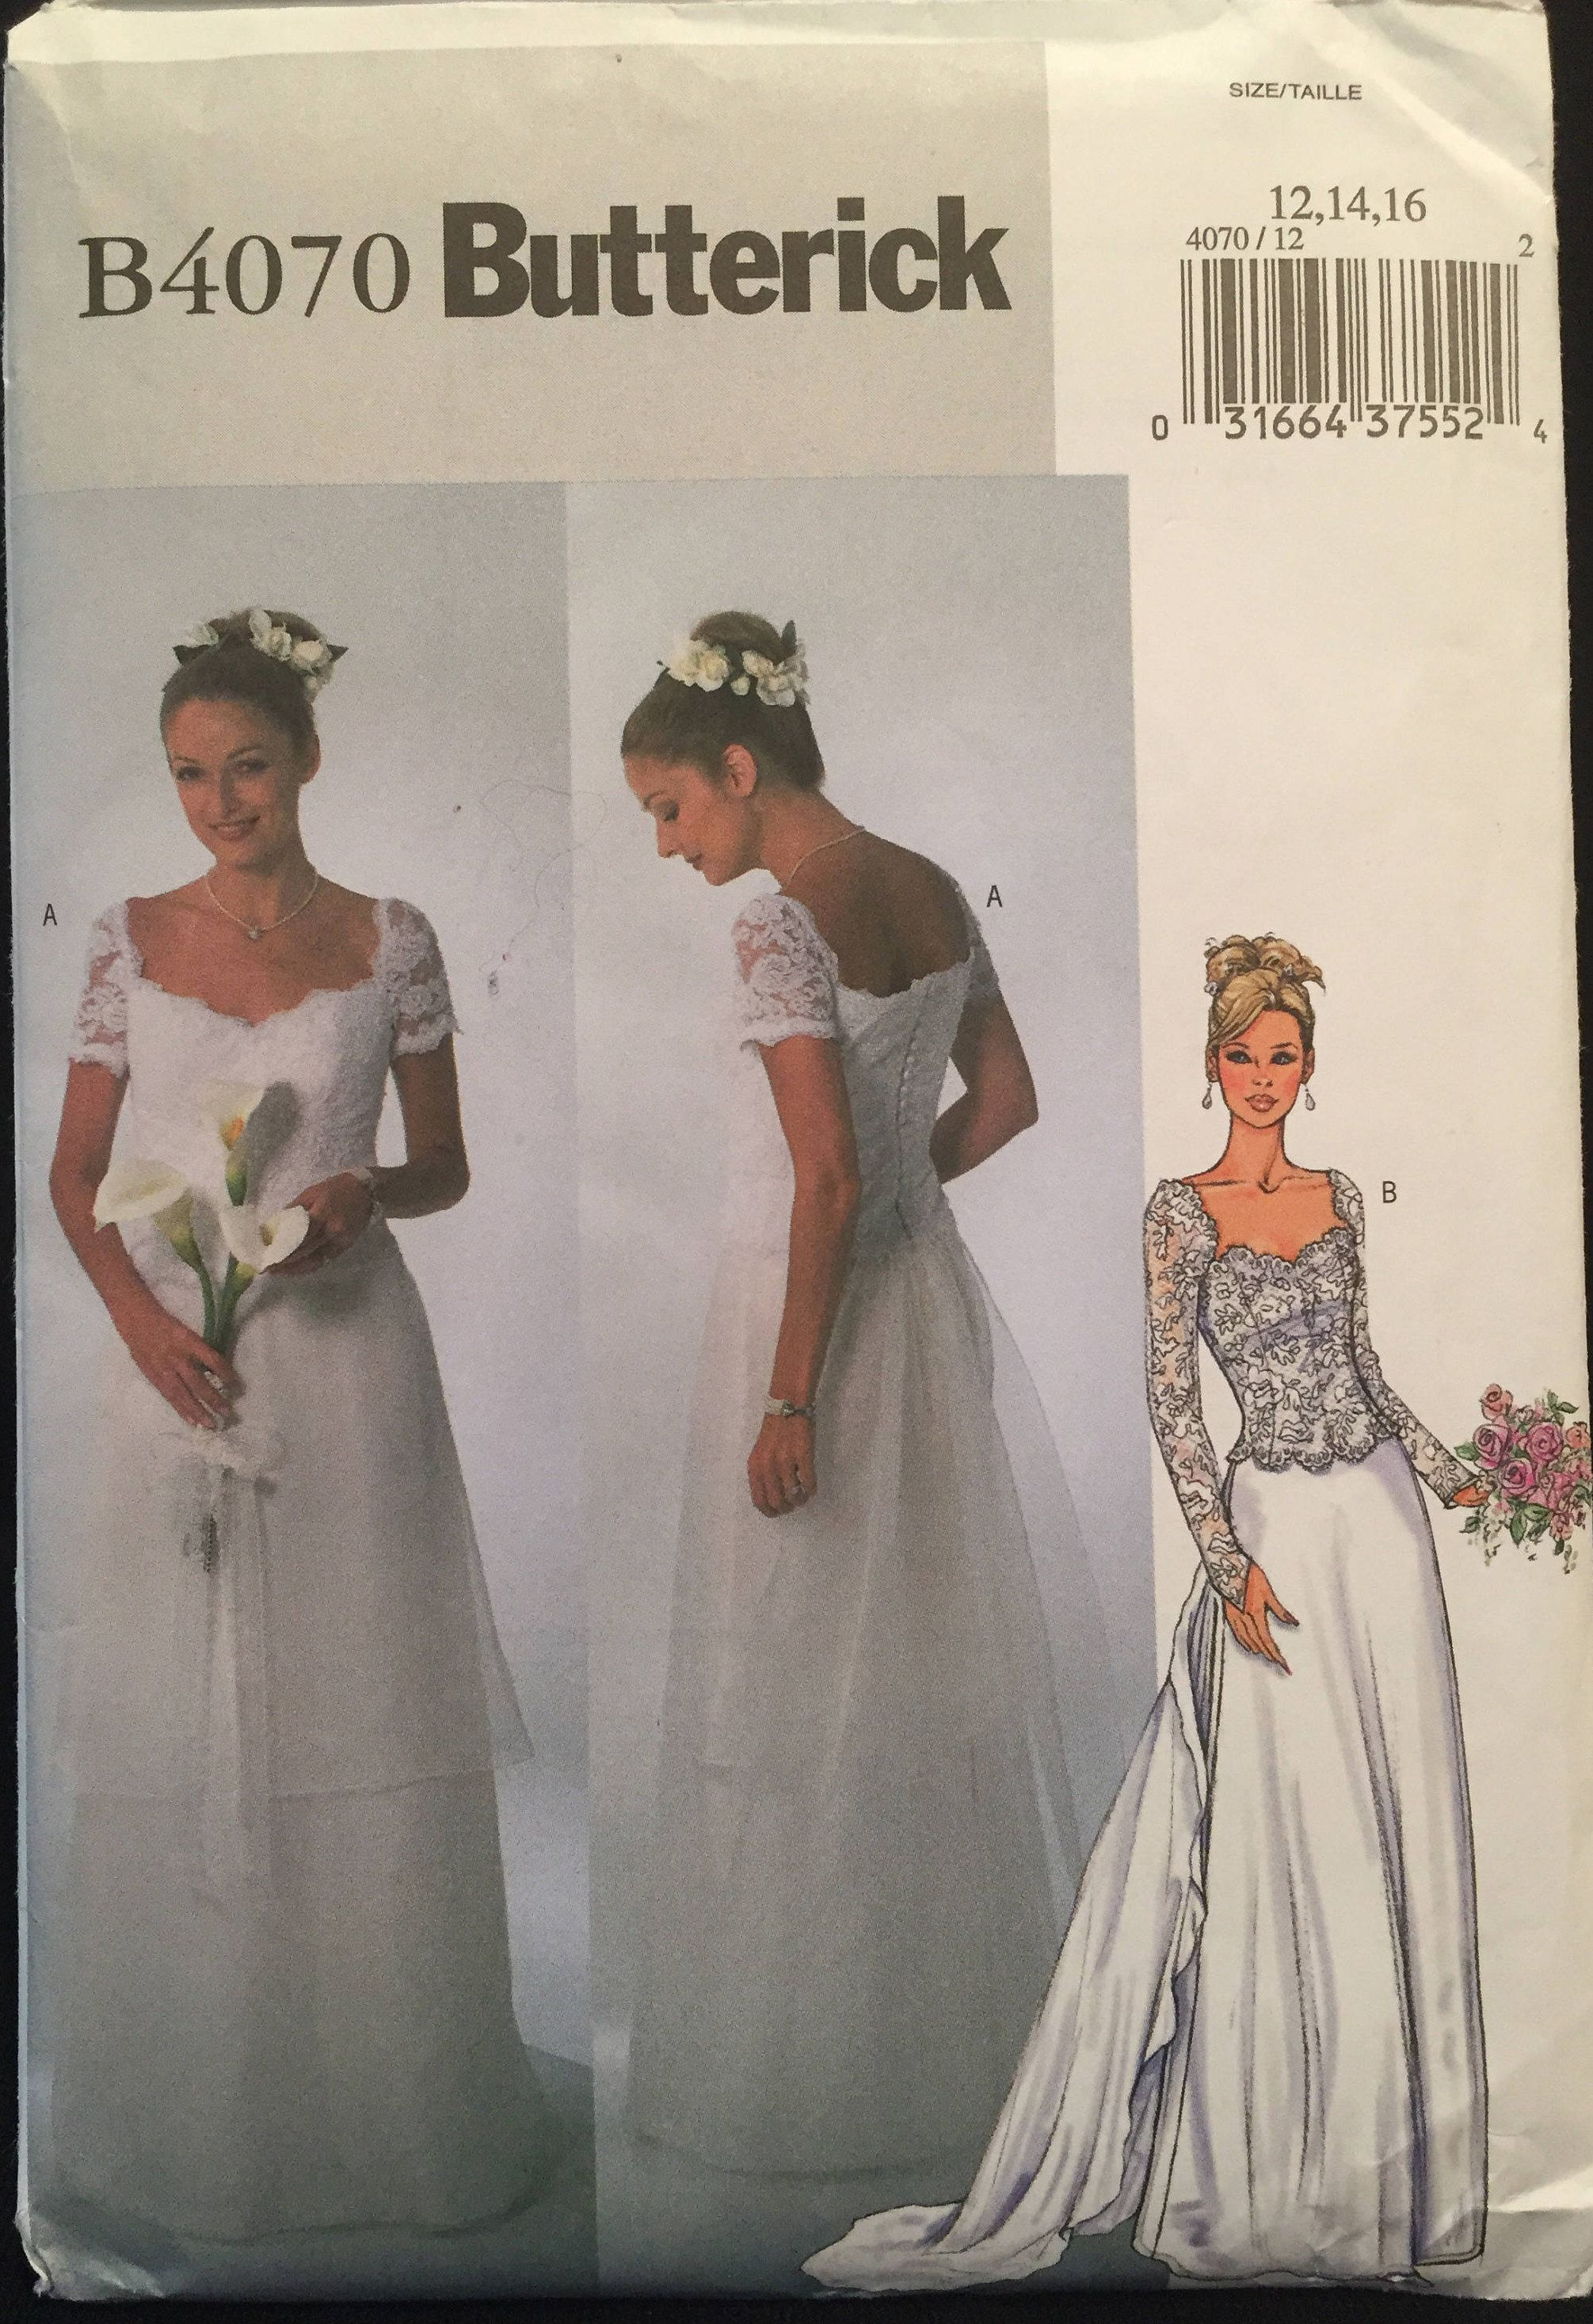 Here is the latest in my etsy shopButterick Wedding Gown